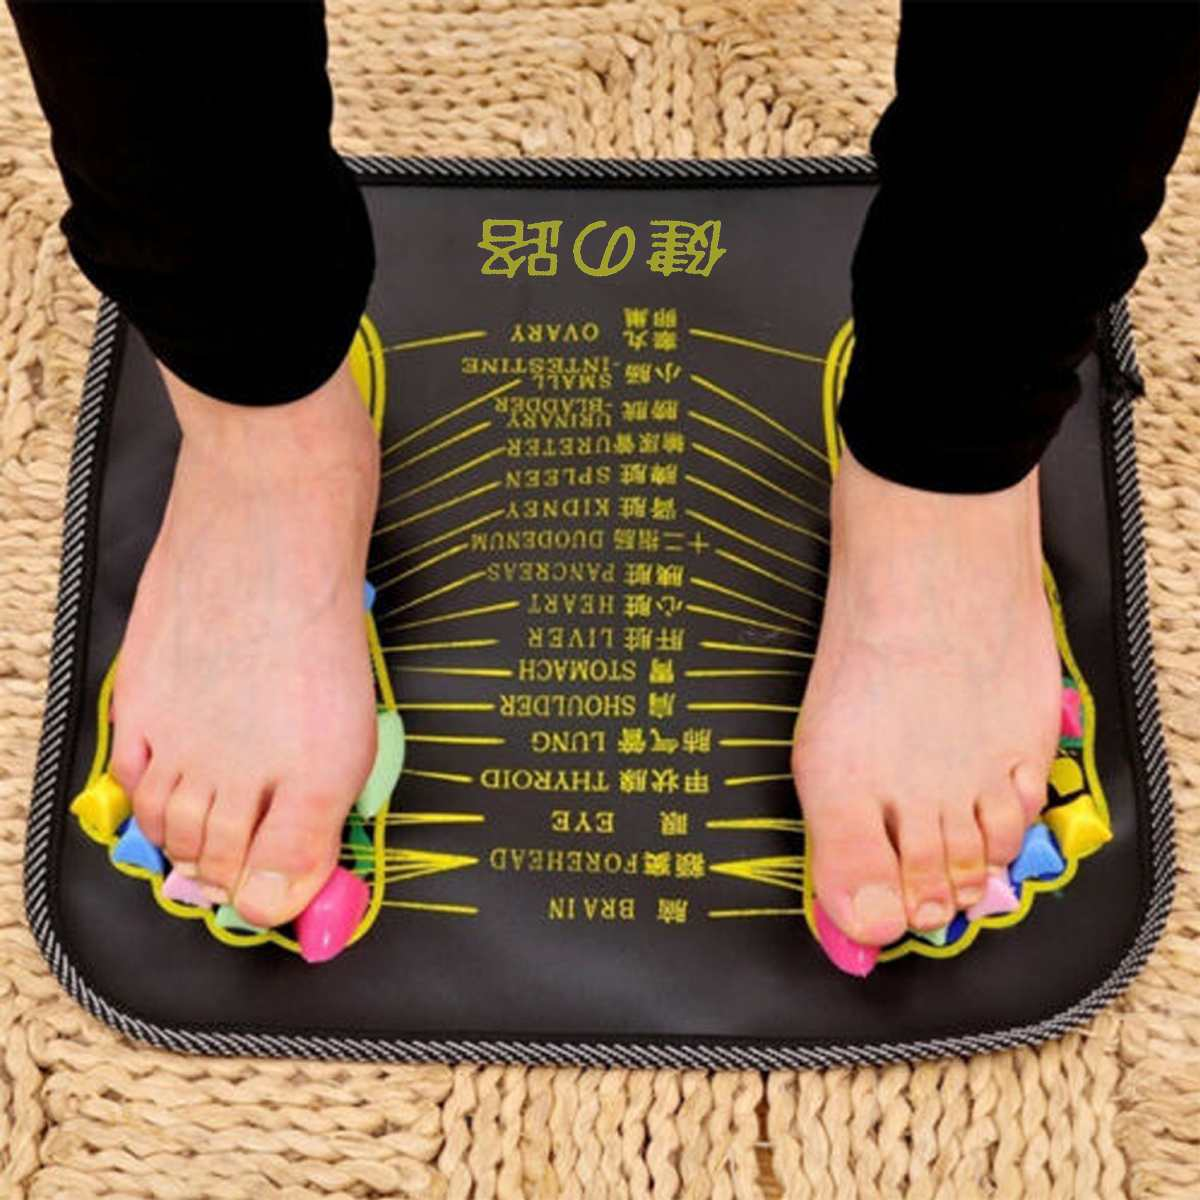 KIFIT Foot Massage Mat Colored Plastic Durable Walk Stone Square Healthy Foot Massage Health Mat to Stimulate Reflex-Zones